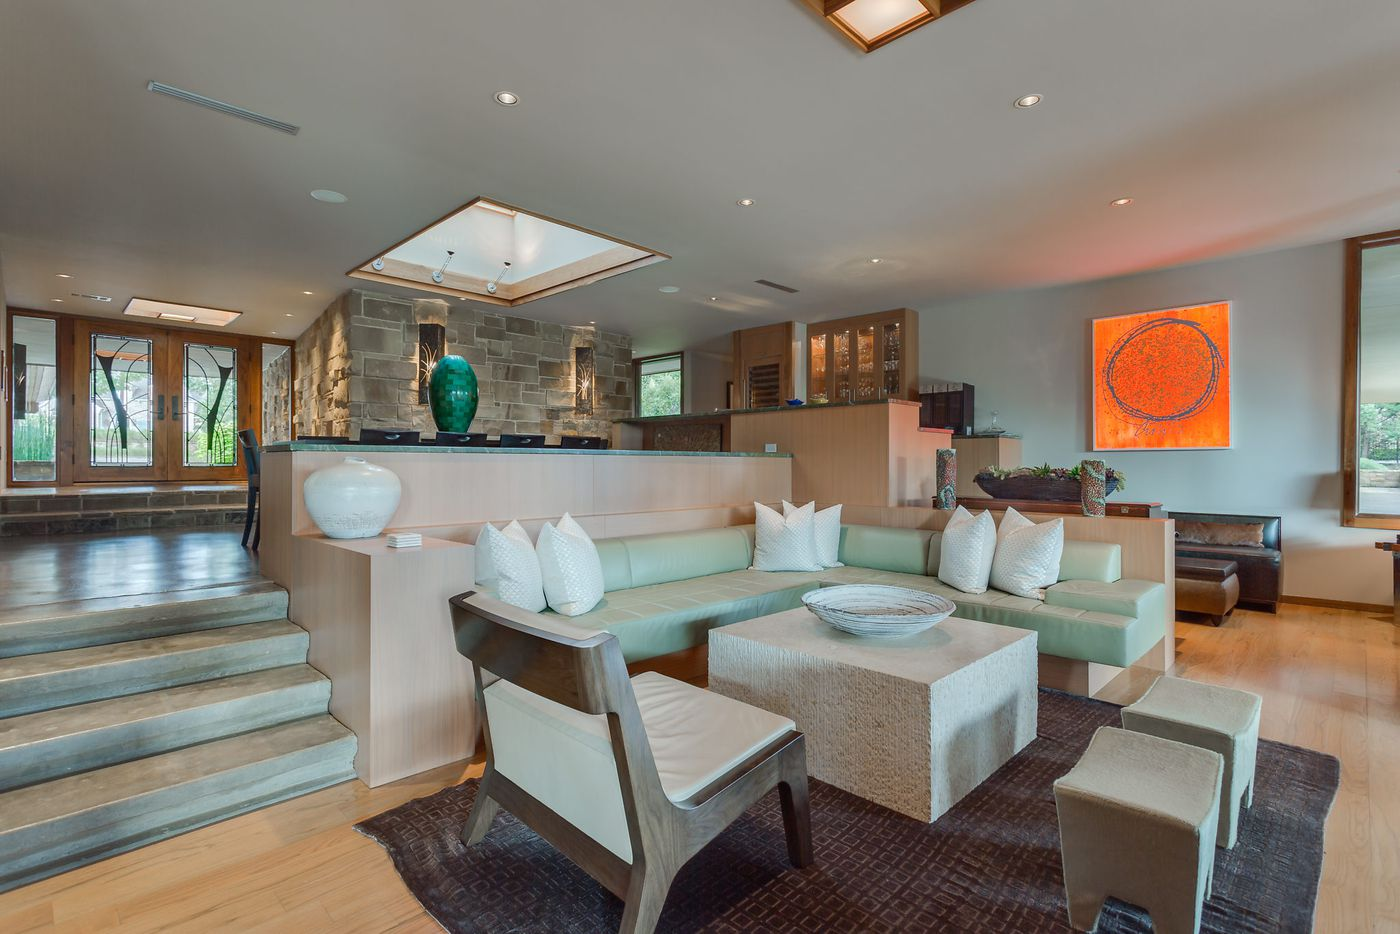 A look at the interior of 4808 Bill Simmons Road in Colleyville, TX.